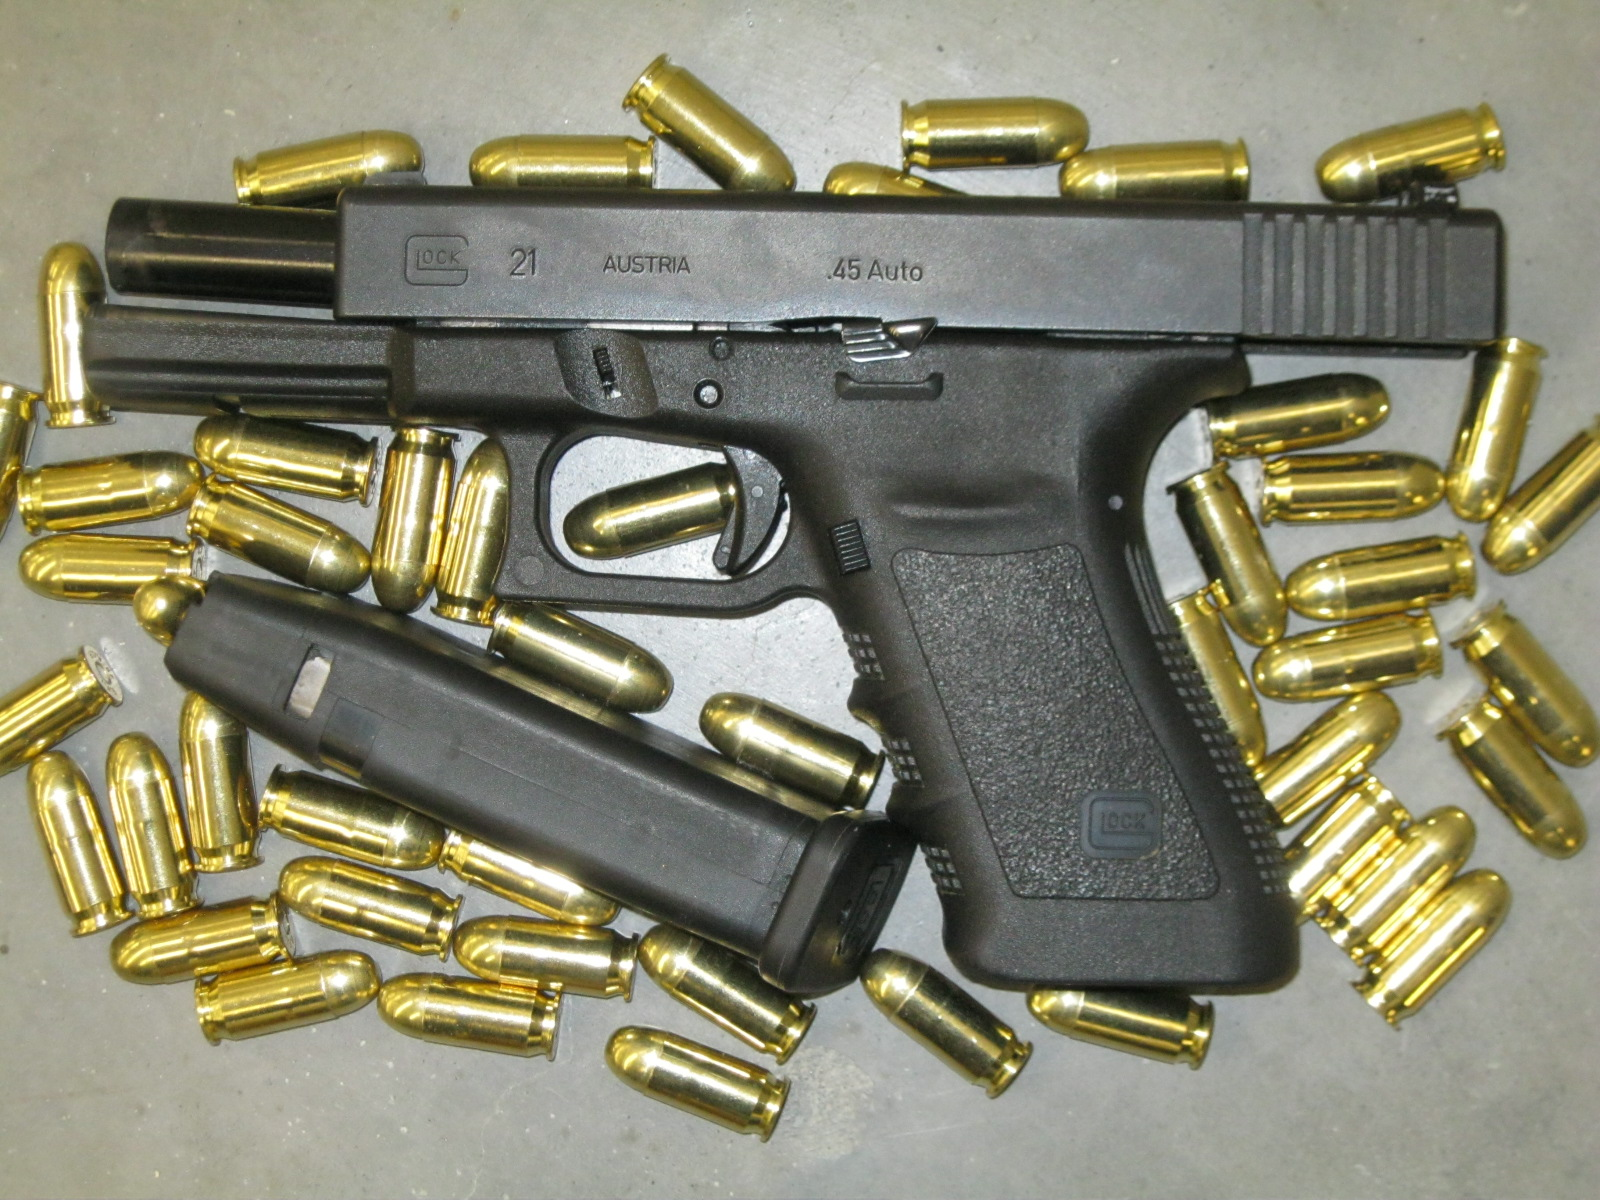 Ready Reserve's Ammo In a Can - Guns.com